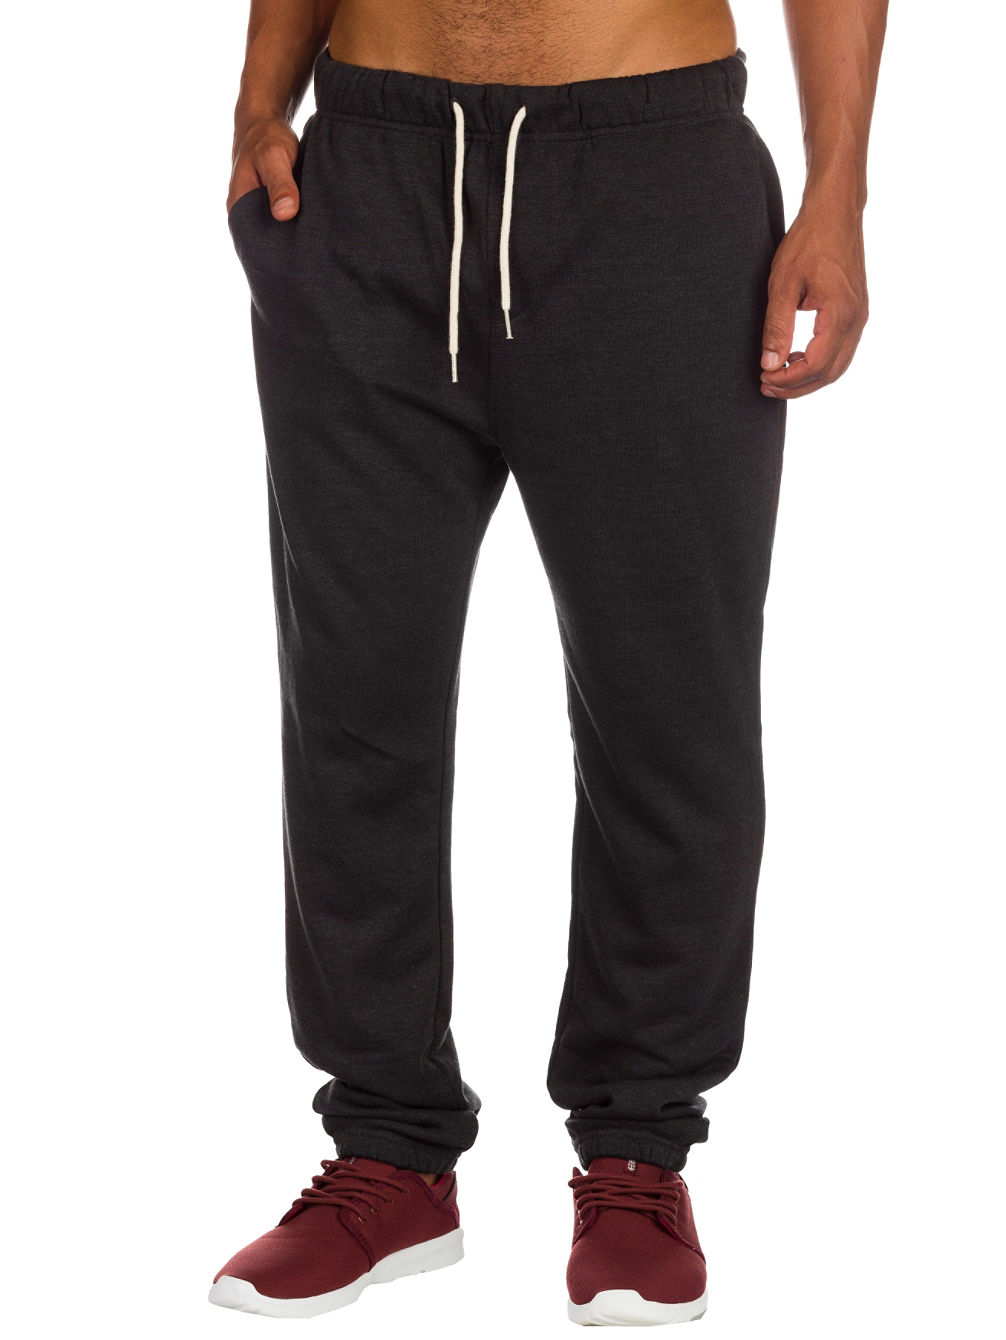 Rebel 3 Jogging Pants